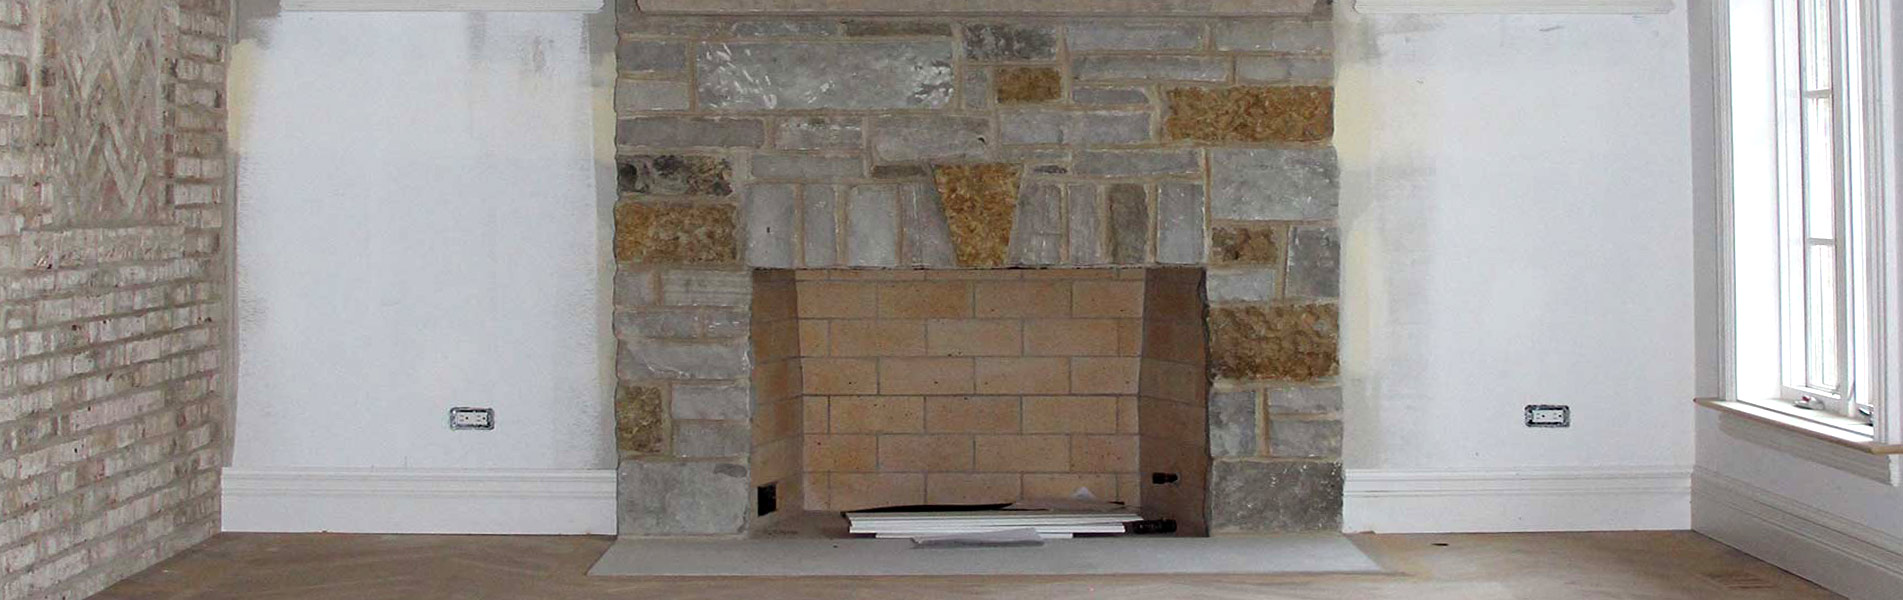 Indoor Fireplaces Installation Services by B&C Pavers and Landscaping Inc.